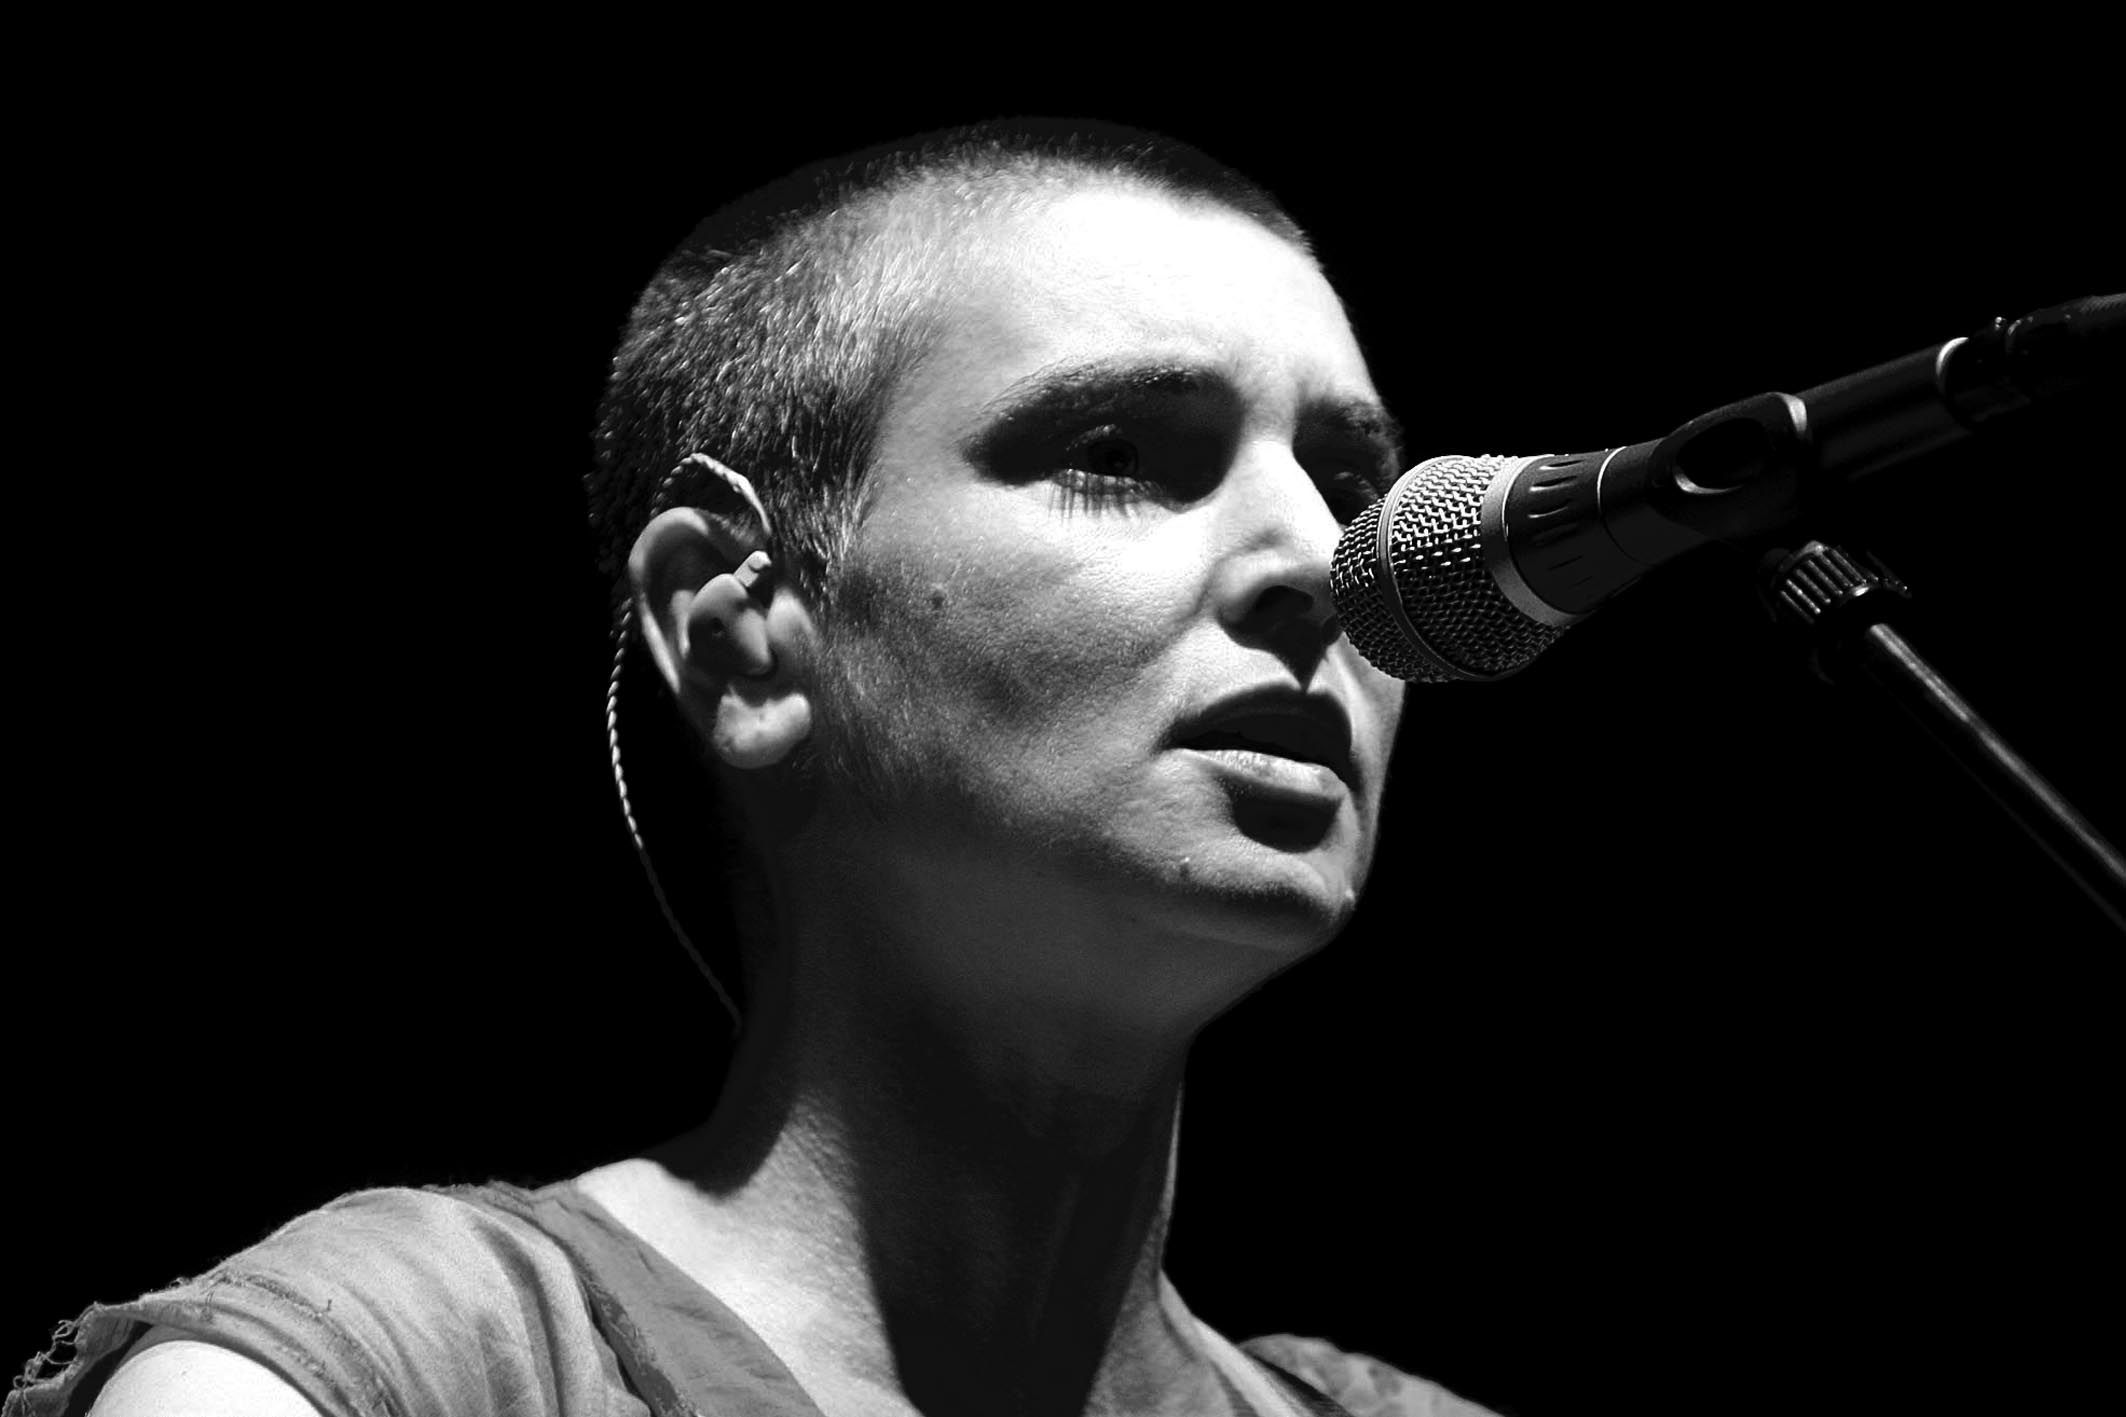 The always outspoken and wonderful Sinéad O'Connor